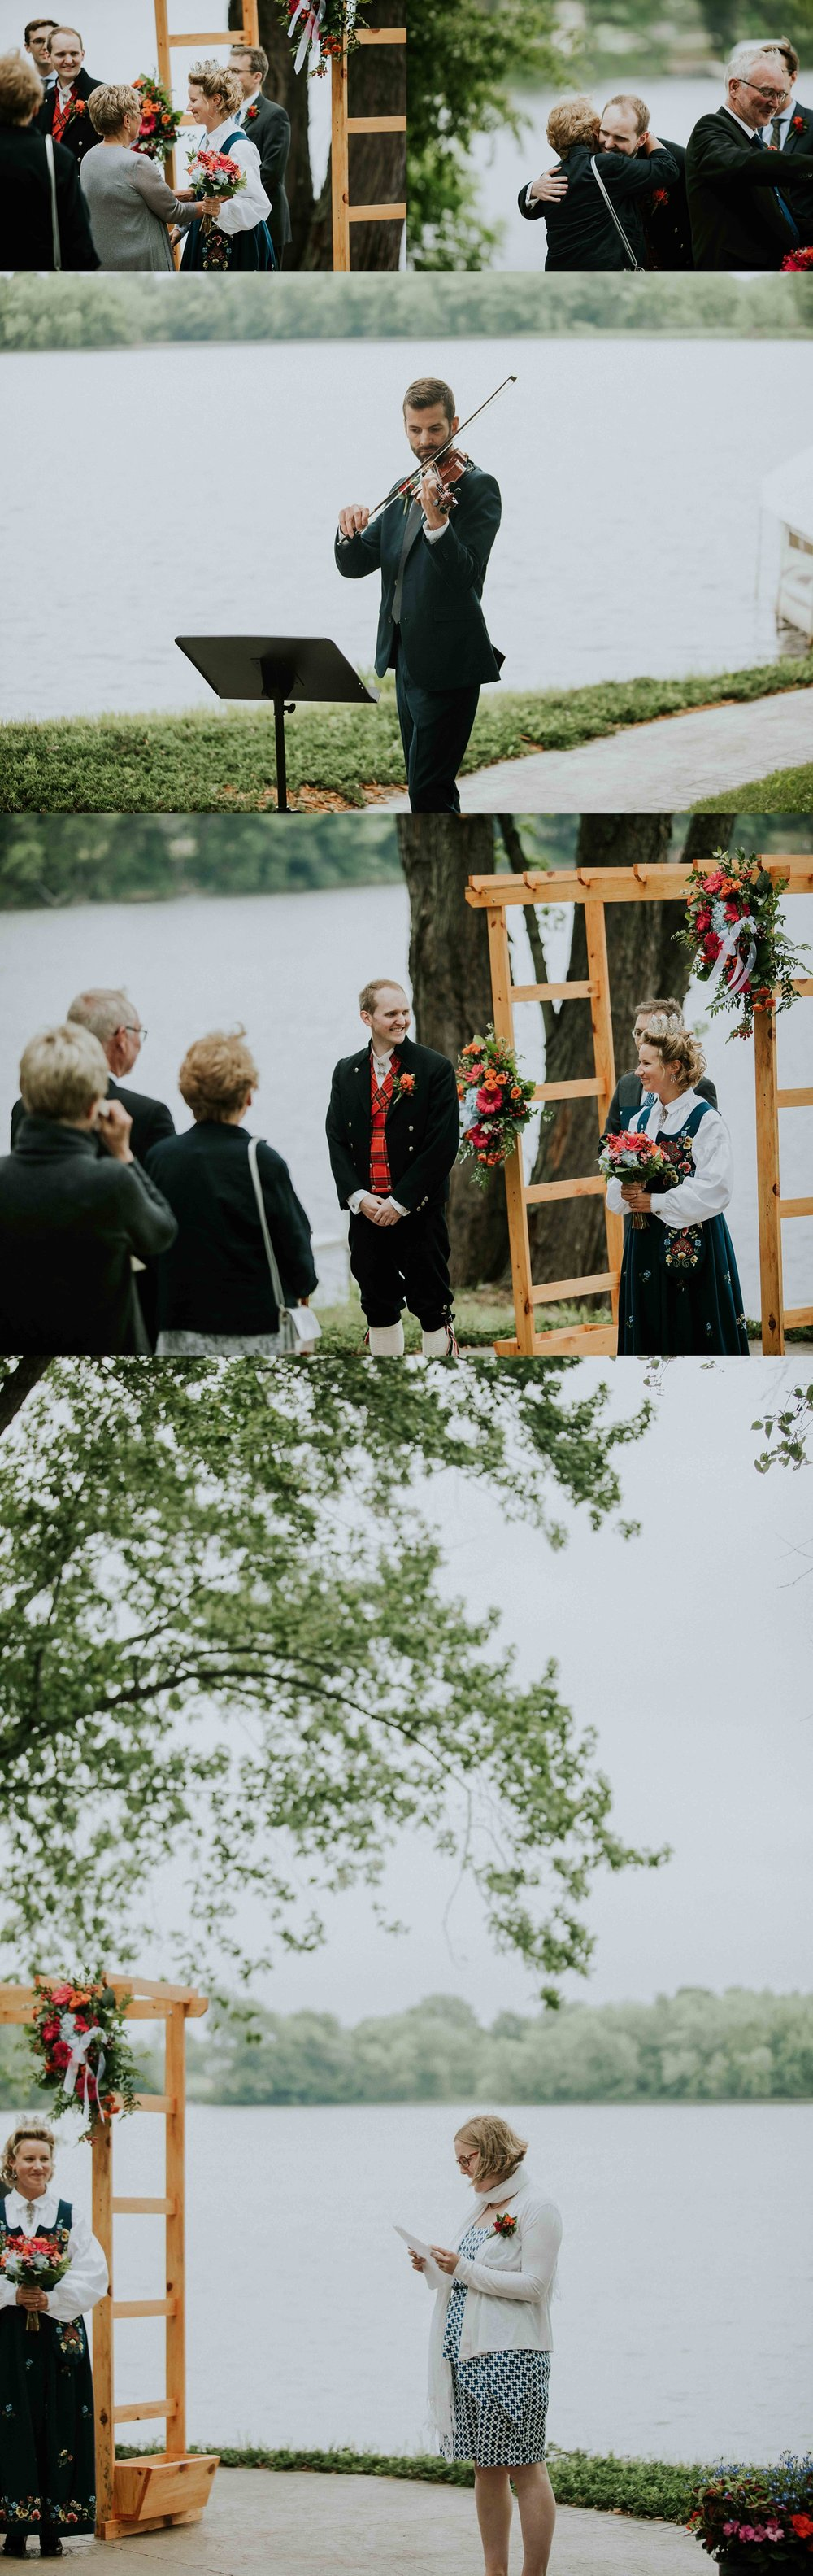 Norwegian Wedding Stevens Point Wisconsin Wedding Photographer Chloe Ann Photography_0013.jpg